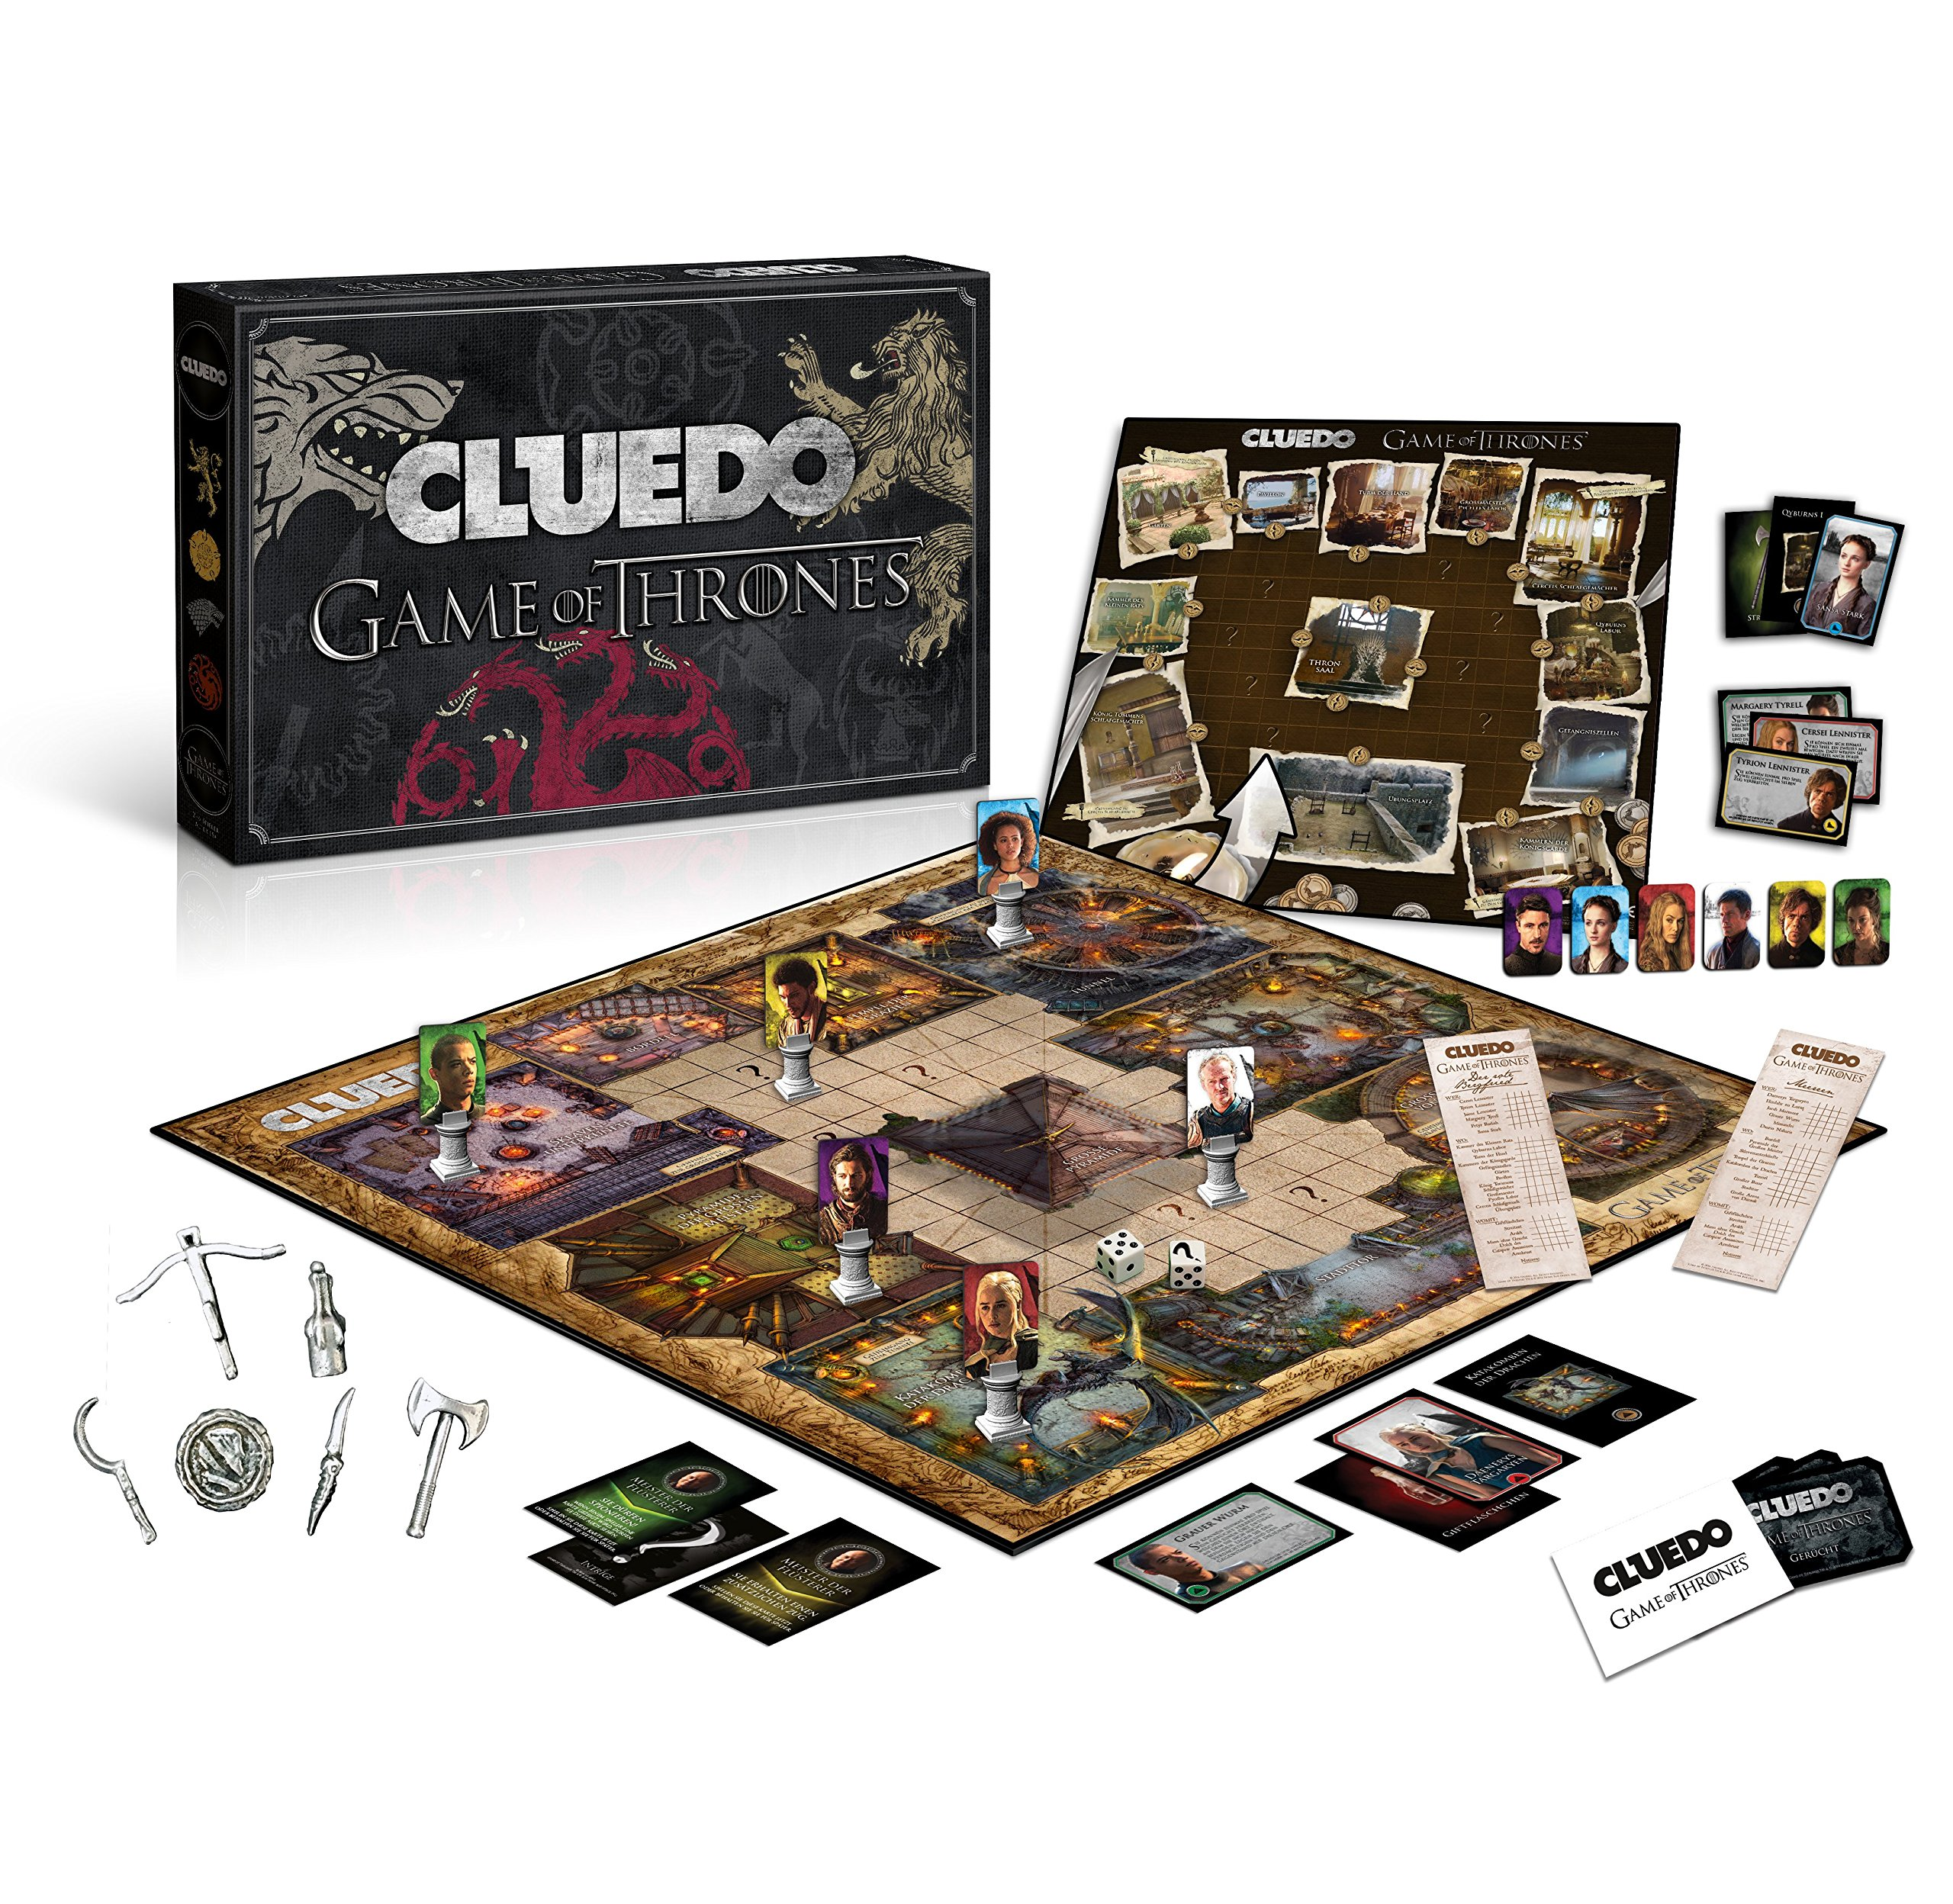 Cluedo Game of Thrones Collectors Edition: Amazon.es: Libros en idiomas extranjeros